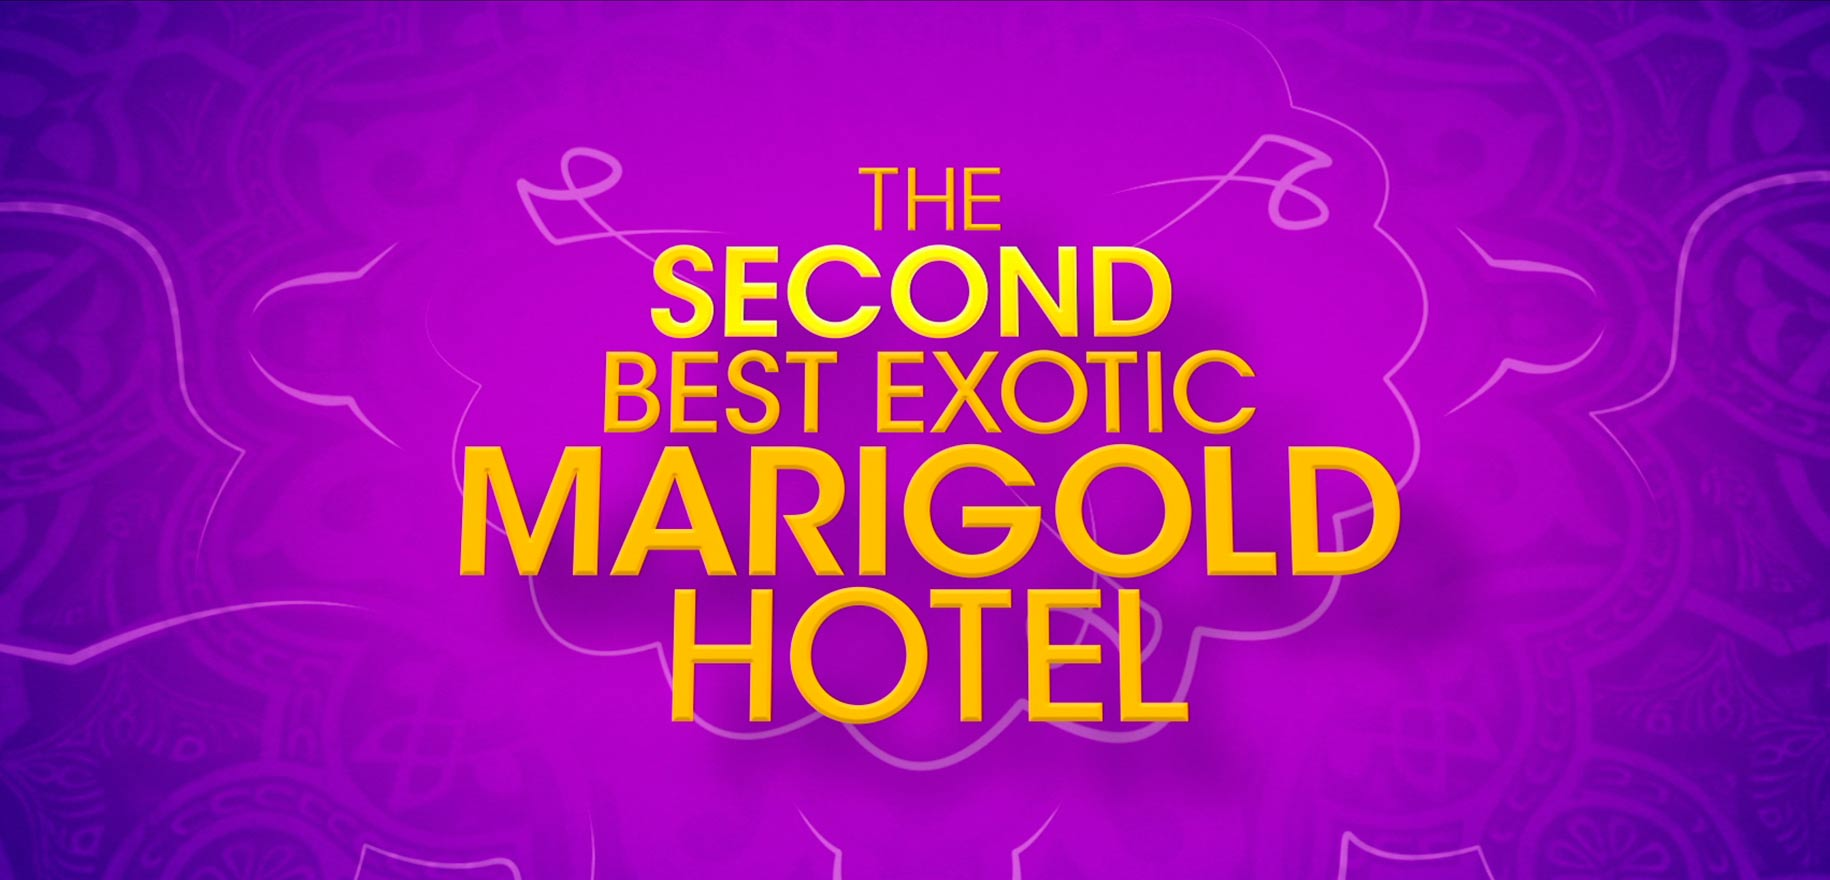 Staysure & The Second Best Exotic Marigold Hotel